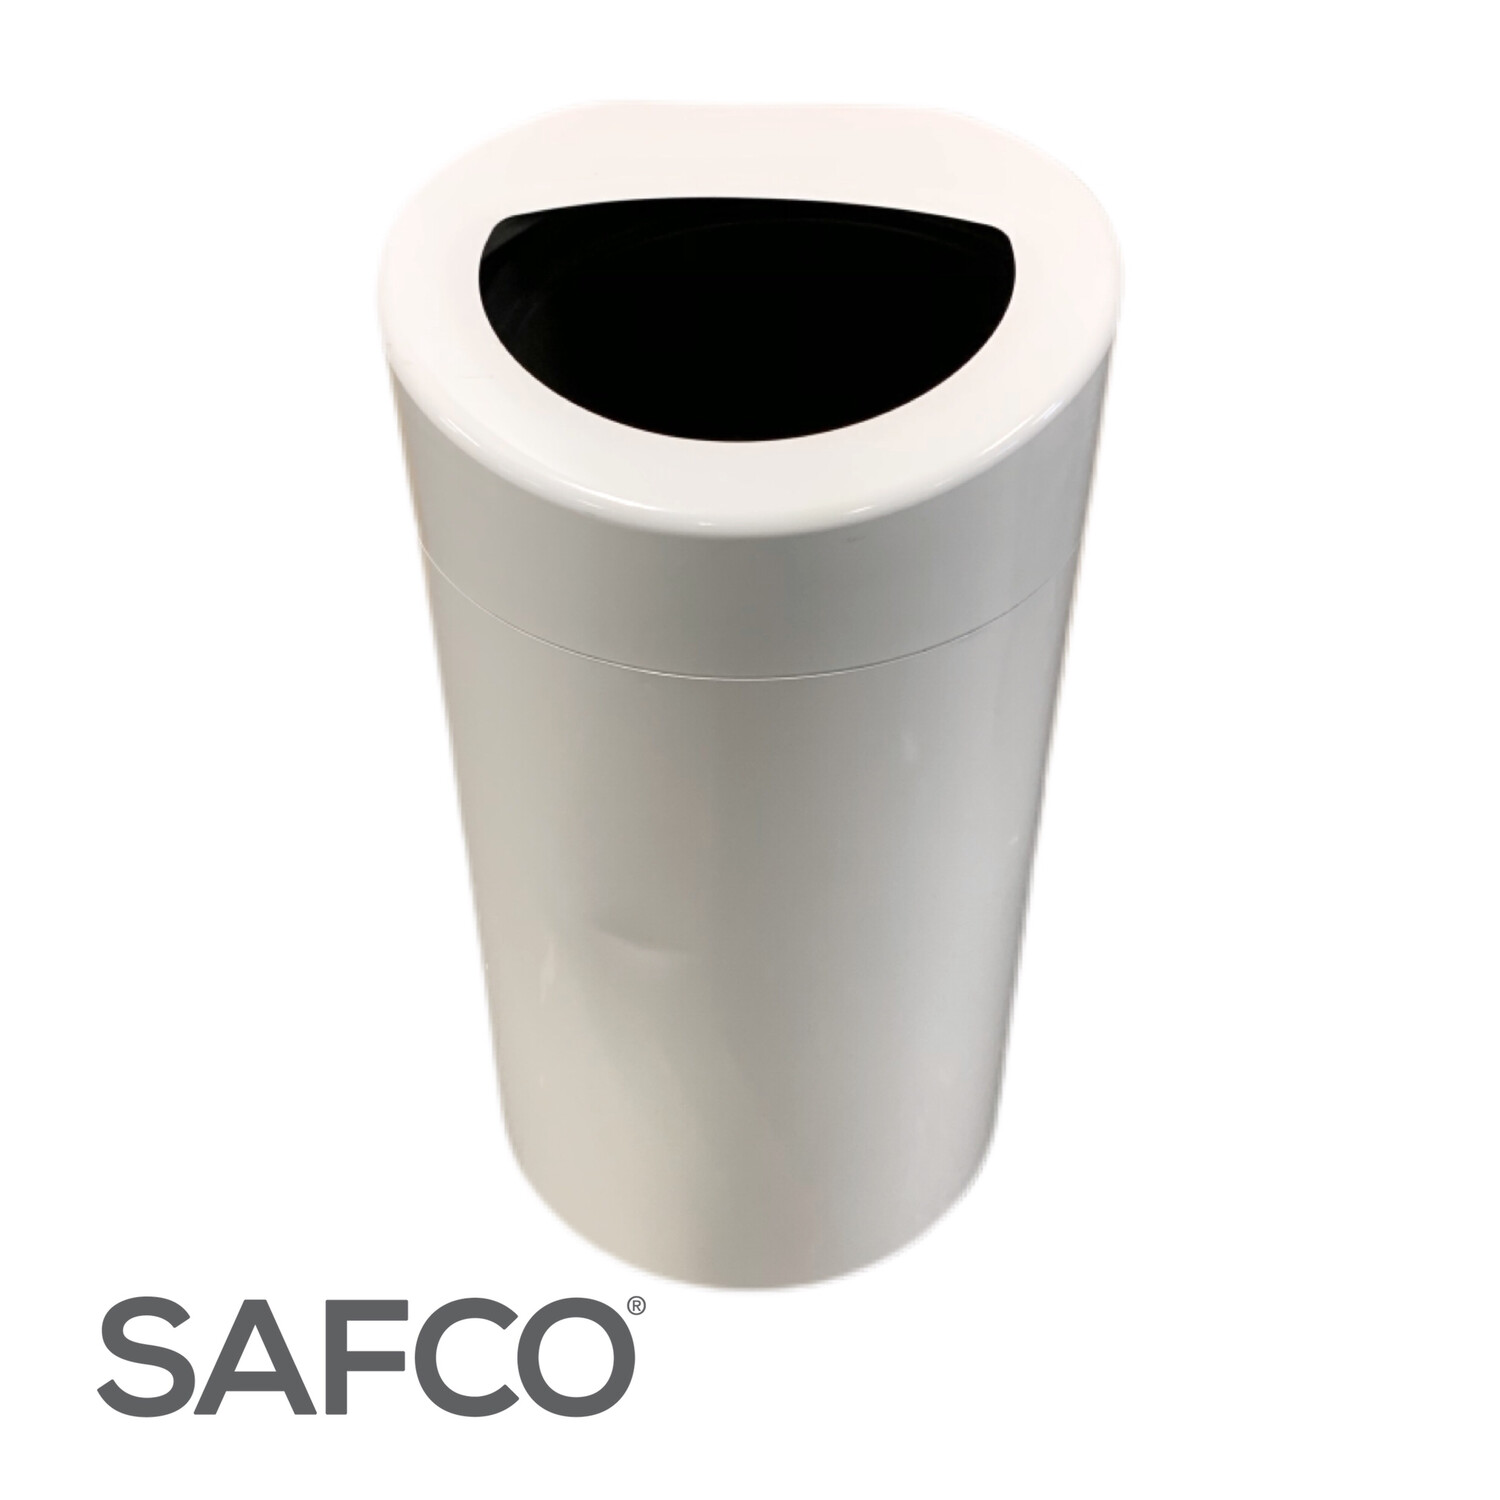 White Safco Trash Can